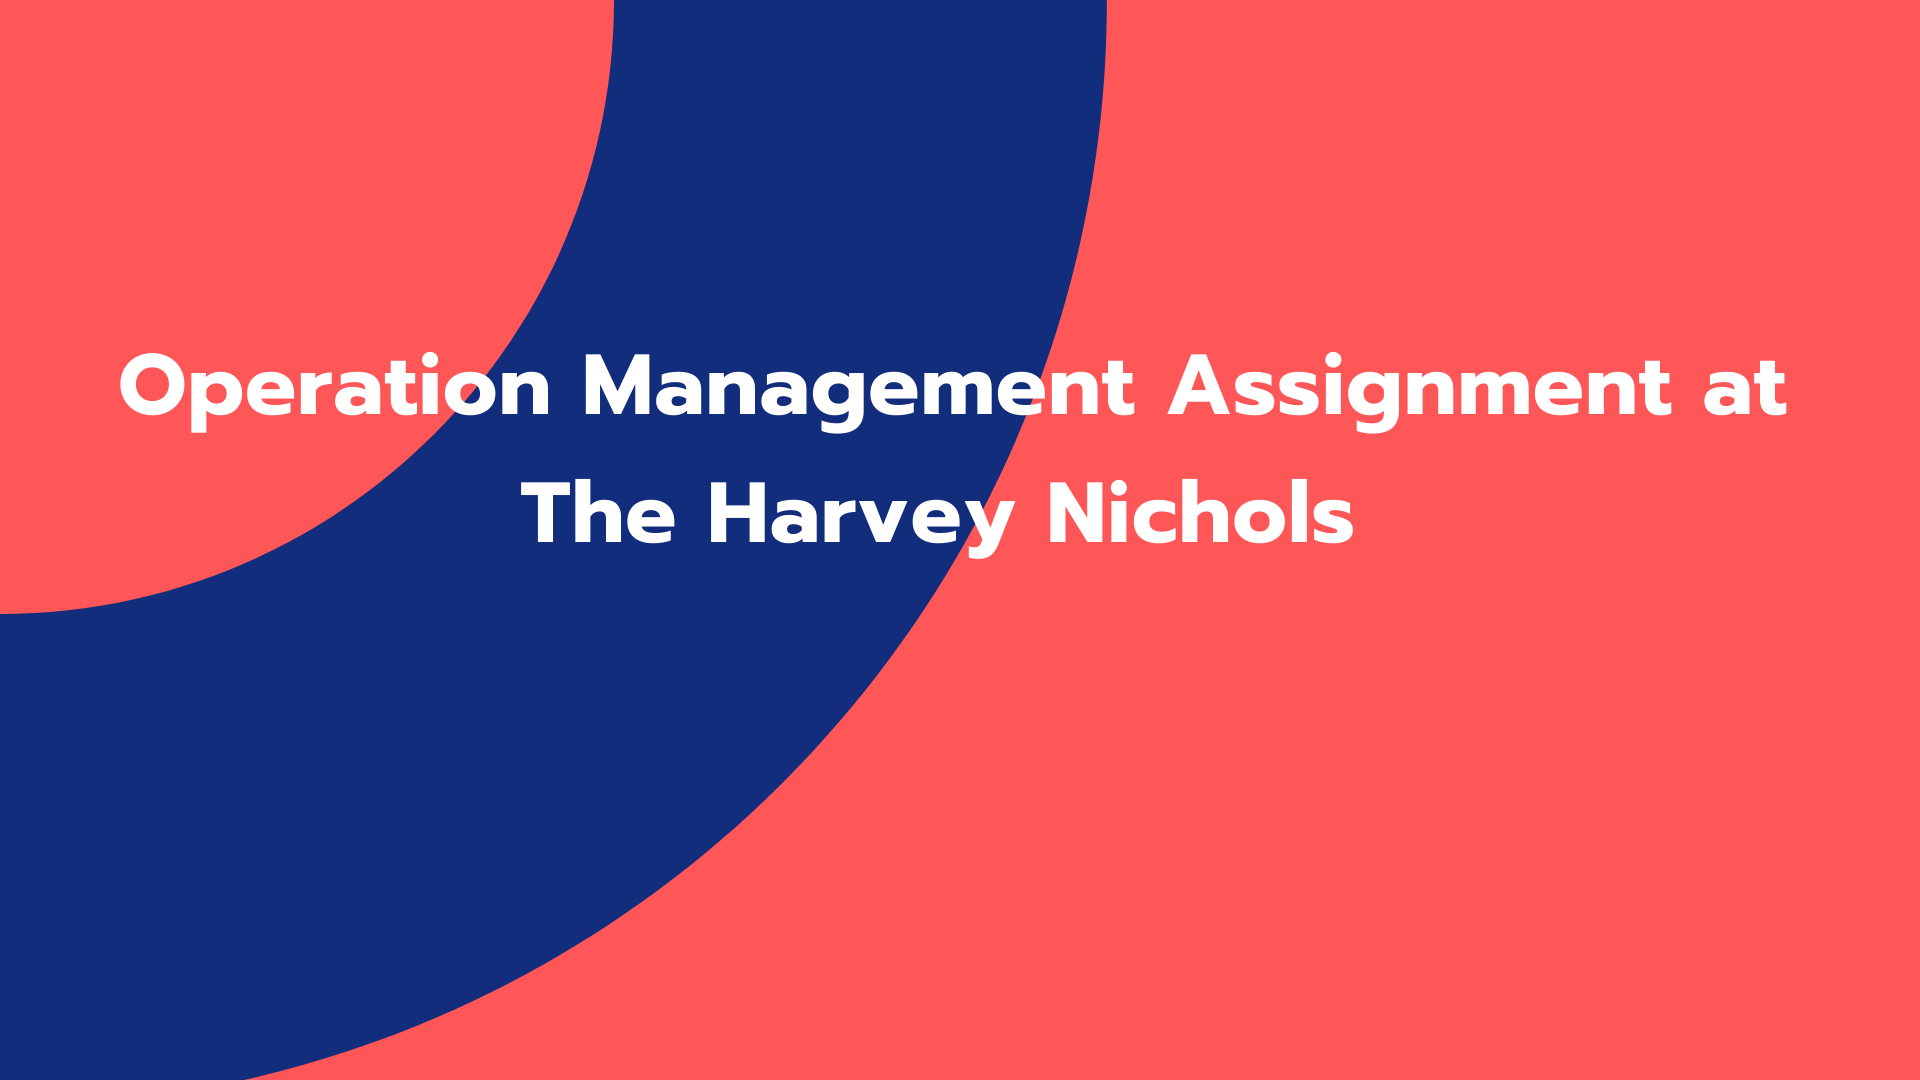 Operation Management Assignment at The Harvey Nichols